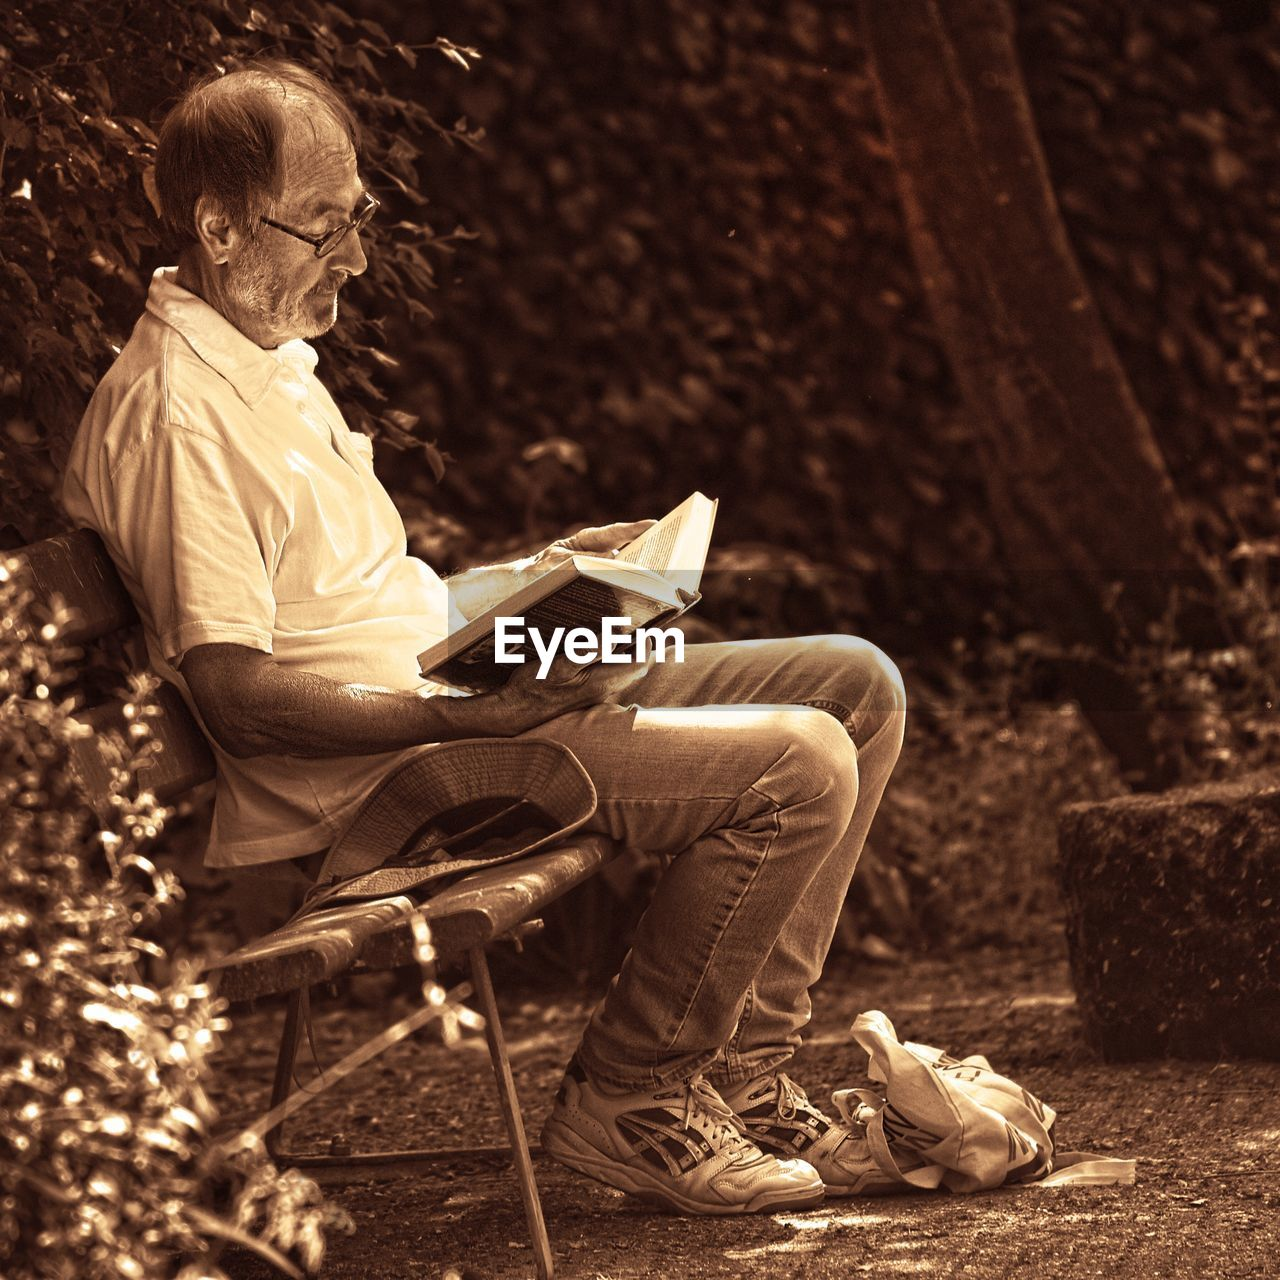 MIDSECTION OF MAN SITTING ON BOOK WITH SEAT